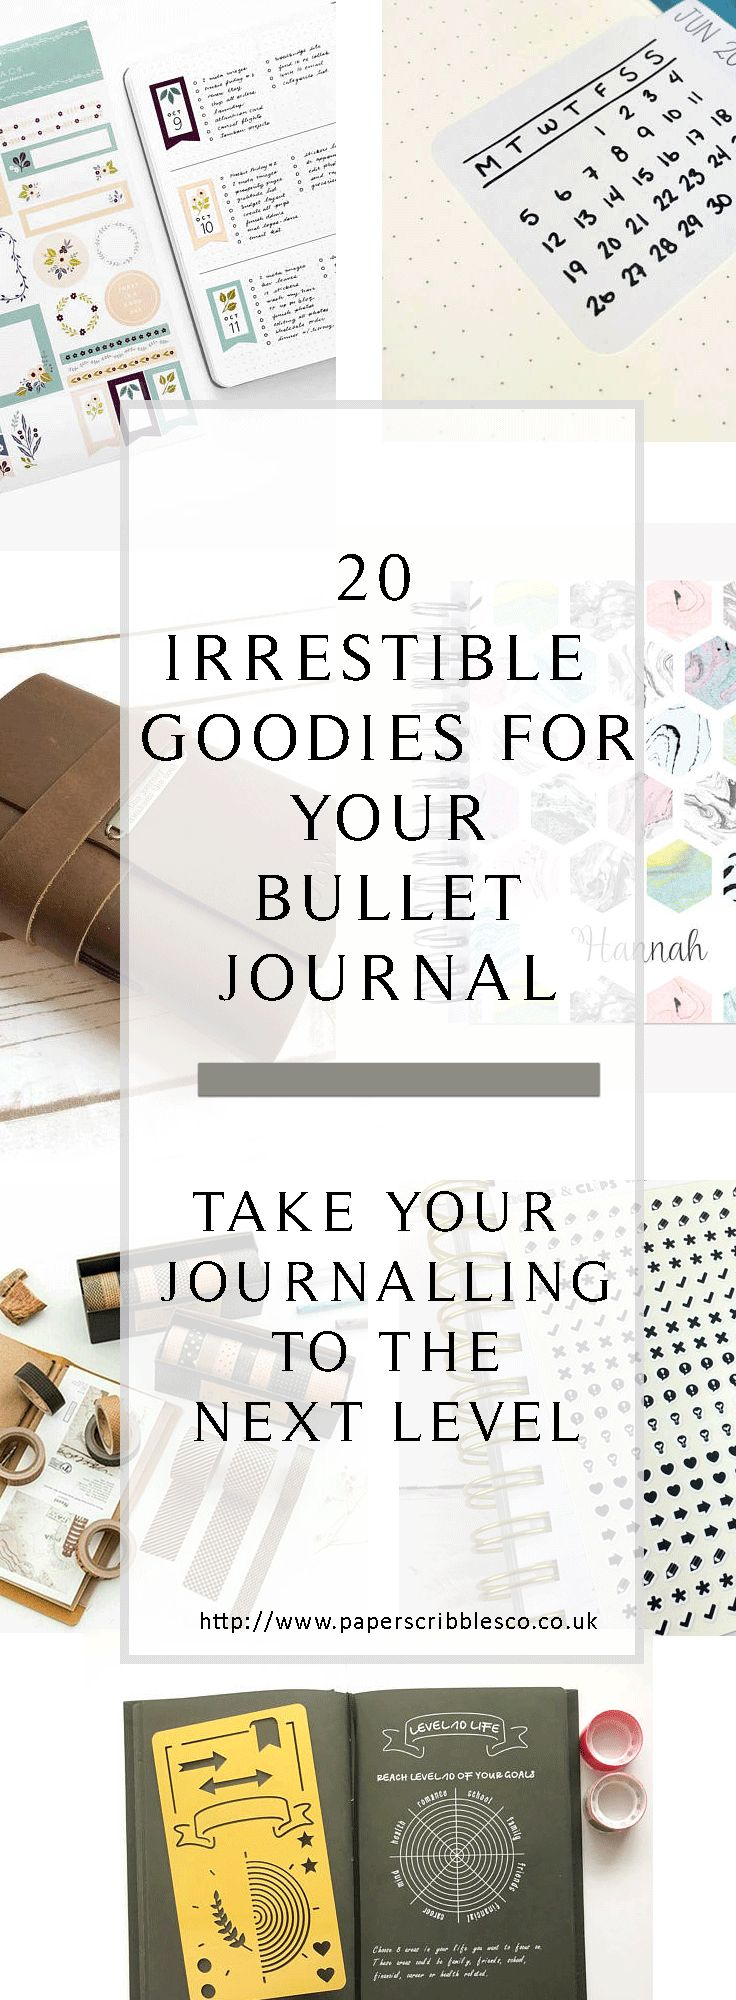 Bullet Journal | BuJo | Bullet Journal Accessories | Bullet Journal Gift Ideas | Bullet Journal Supplies | Planners | Planner Supplies | Planner Accessories | Scrapbooking |  Planner Gift Ideas